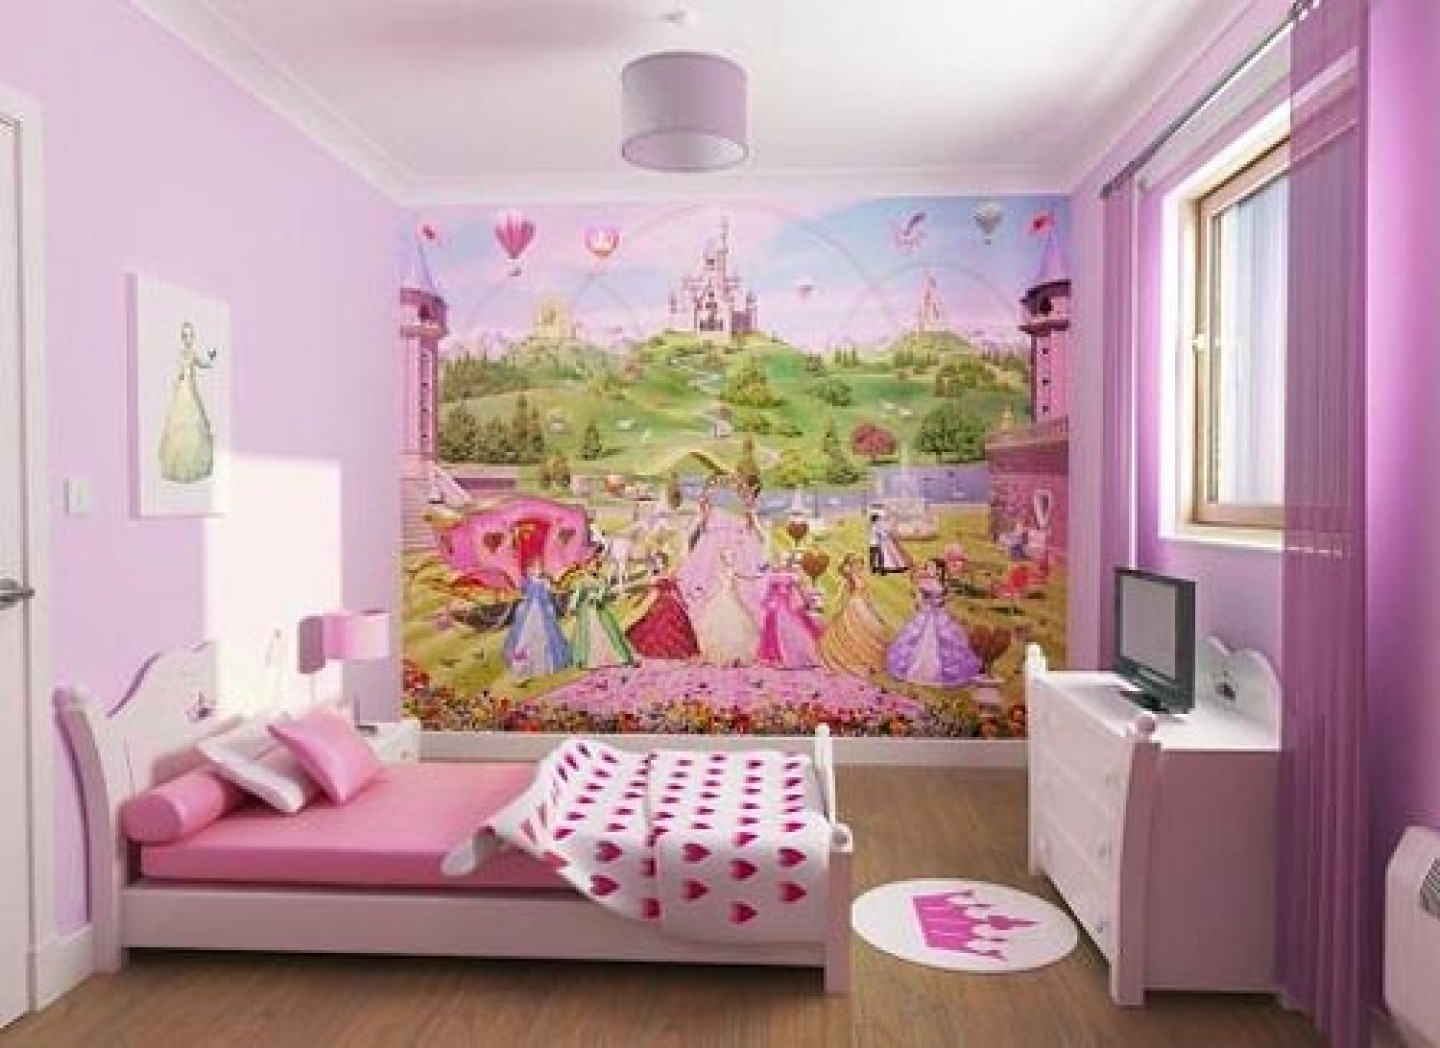 Use Fairytale Wall Decal to Decorate Cute Girls Room Ideas with White Bed and Pink Bedding